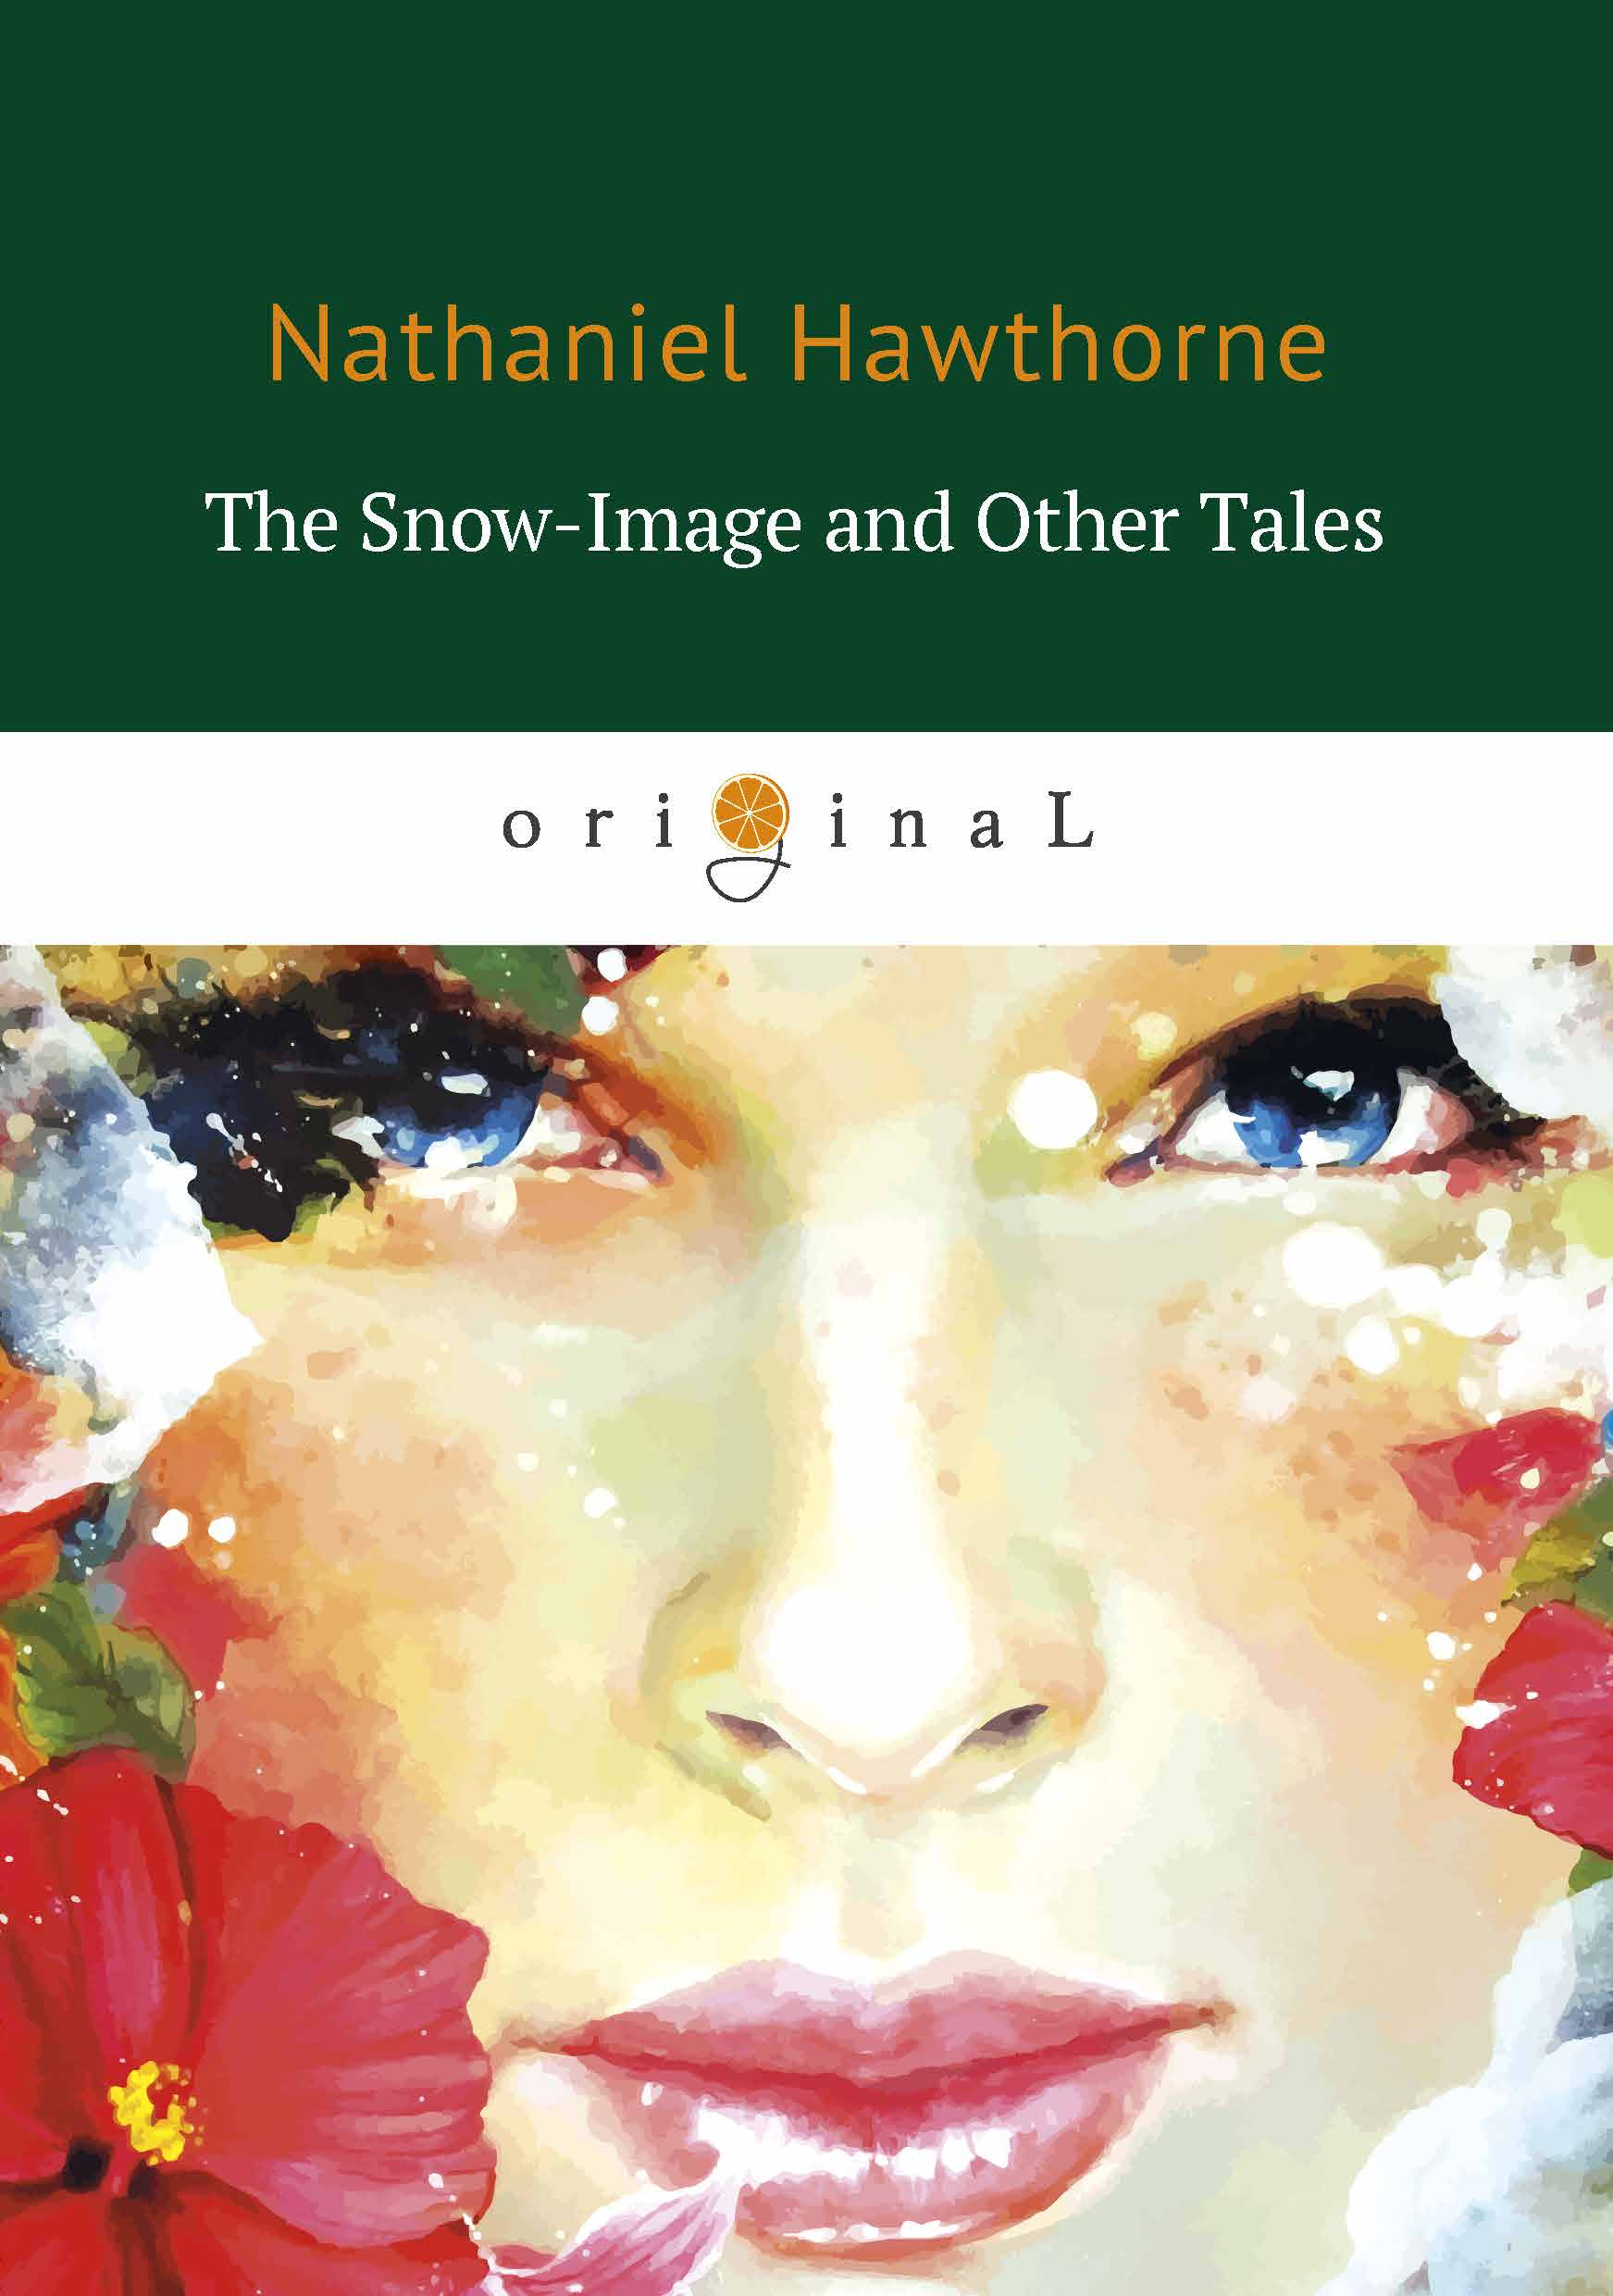 Nathaniel Hawthorne The Snow-Image and Other Tales